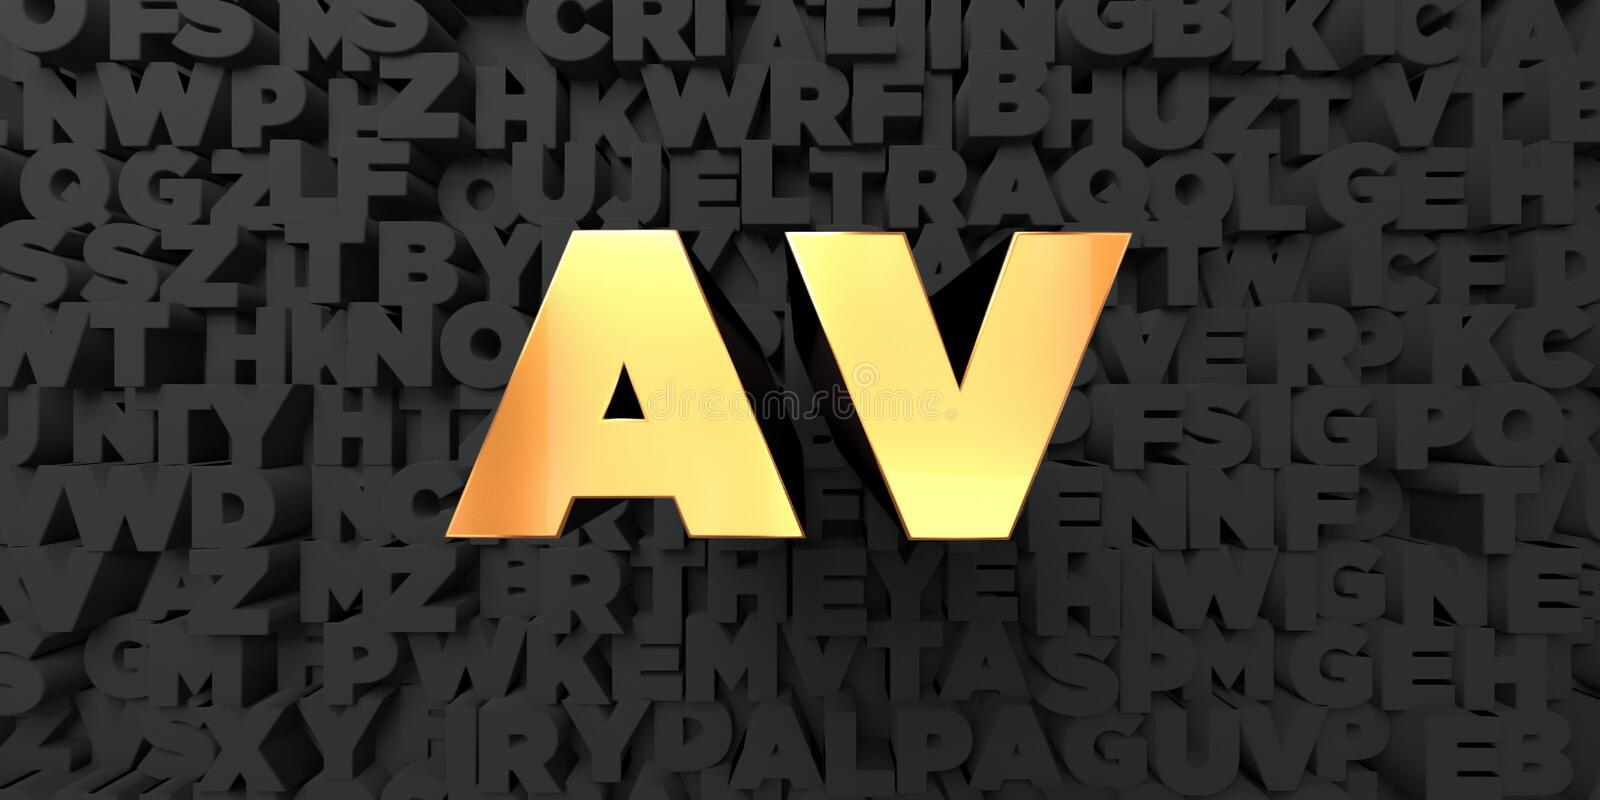 Av - Gold text on black background - 3D rendered royalty free stock picture royalty free illustration